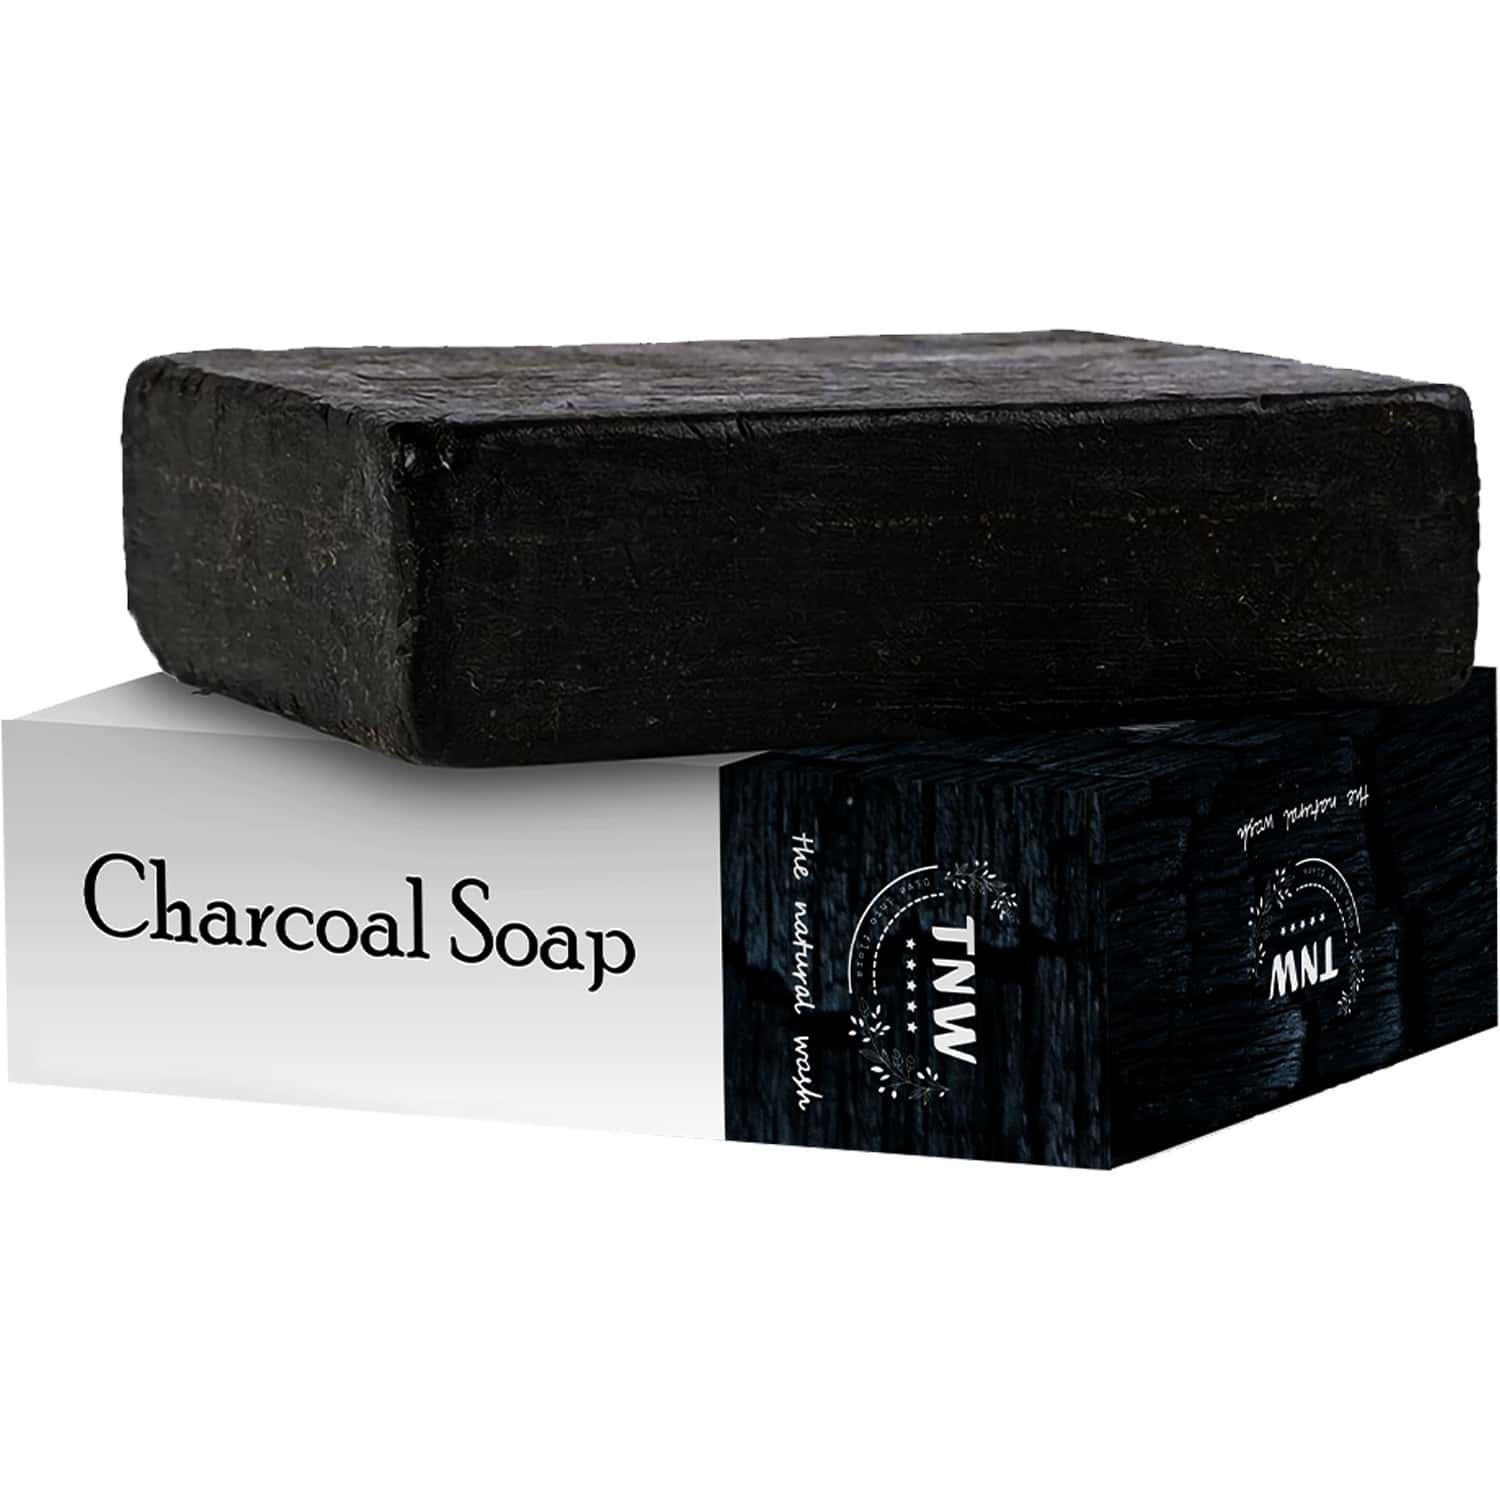 Tnw -the Natural Wash Handmade Activated Charcoal Soap With Anti-pollution Effect - 100 Gm